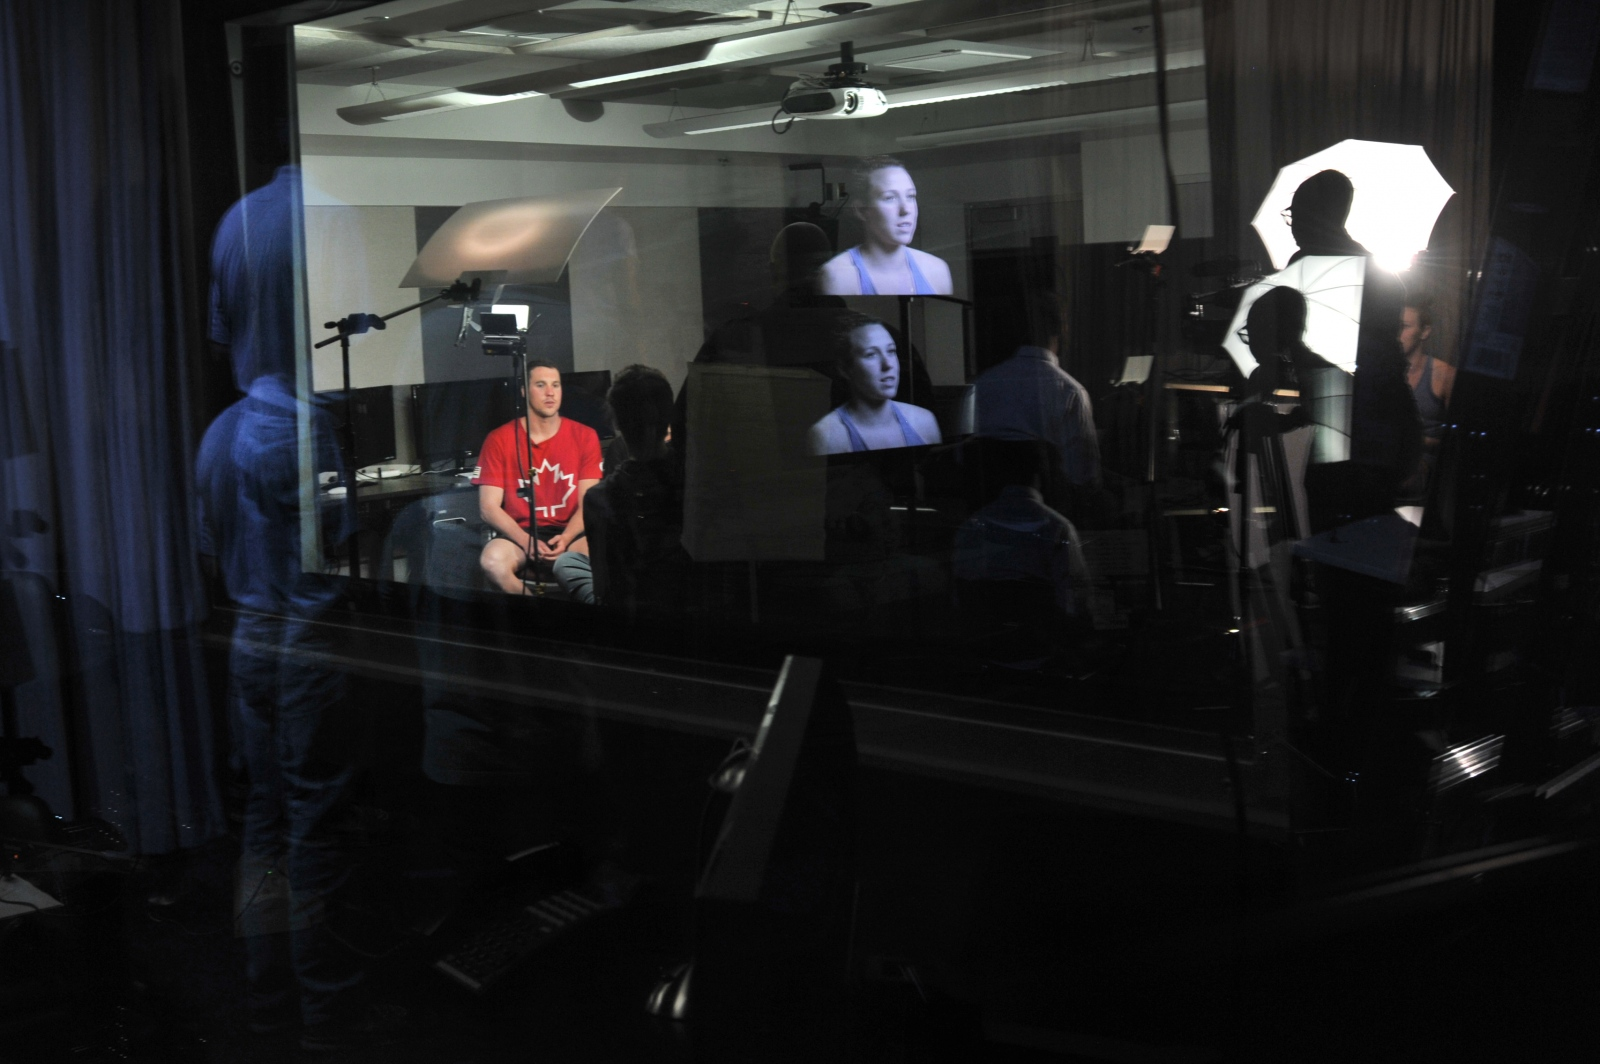 College of the Canyons journalism students interview athletes vying for a spot at the 2016 Summer Olympics to practice interviewing skills on Feb. 24, 2016. Katharine Lotze/The Signal.